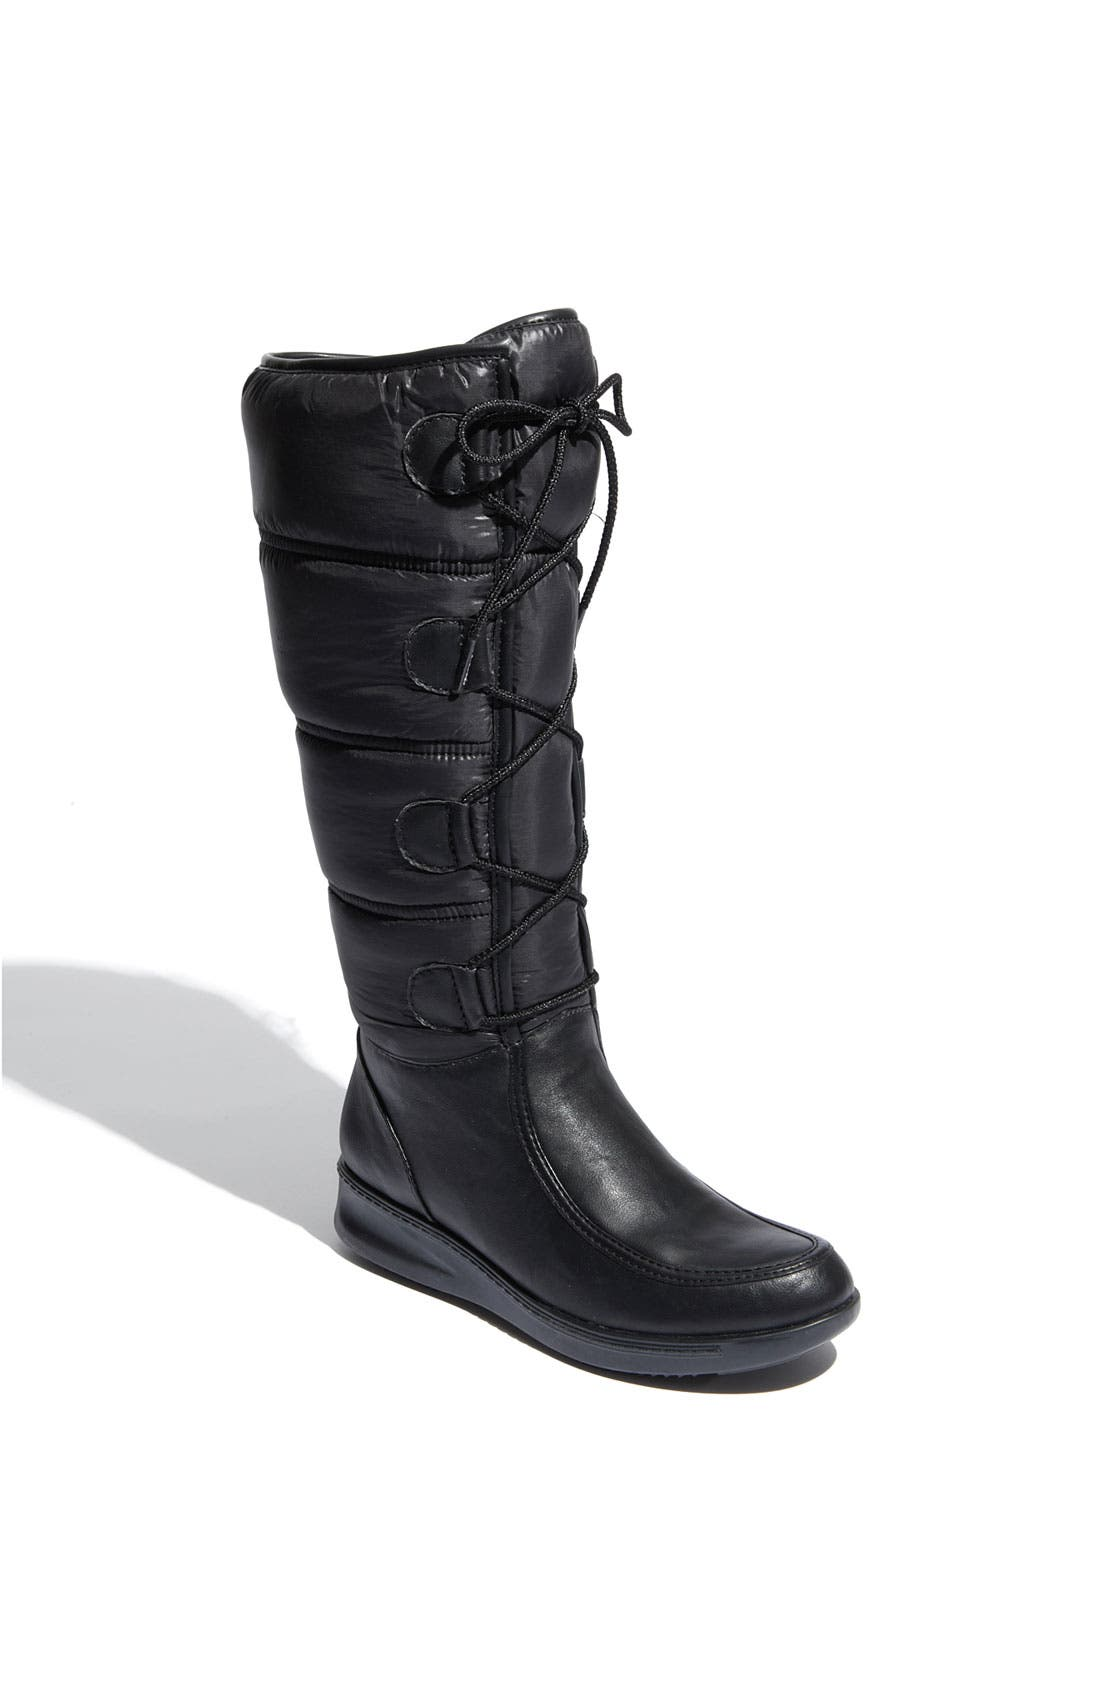 Alternate Image 1 Selected - Naturalizer 'Windy' Boot